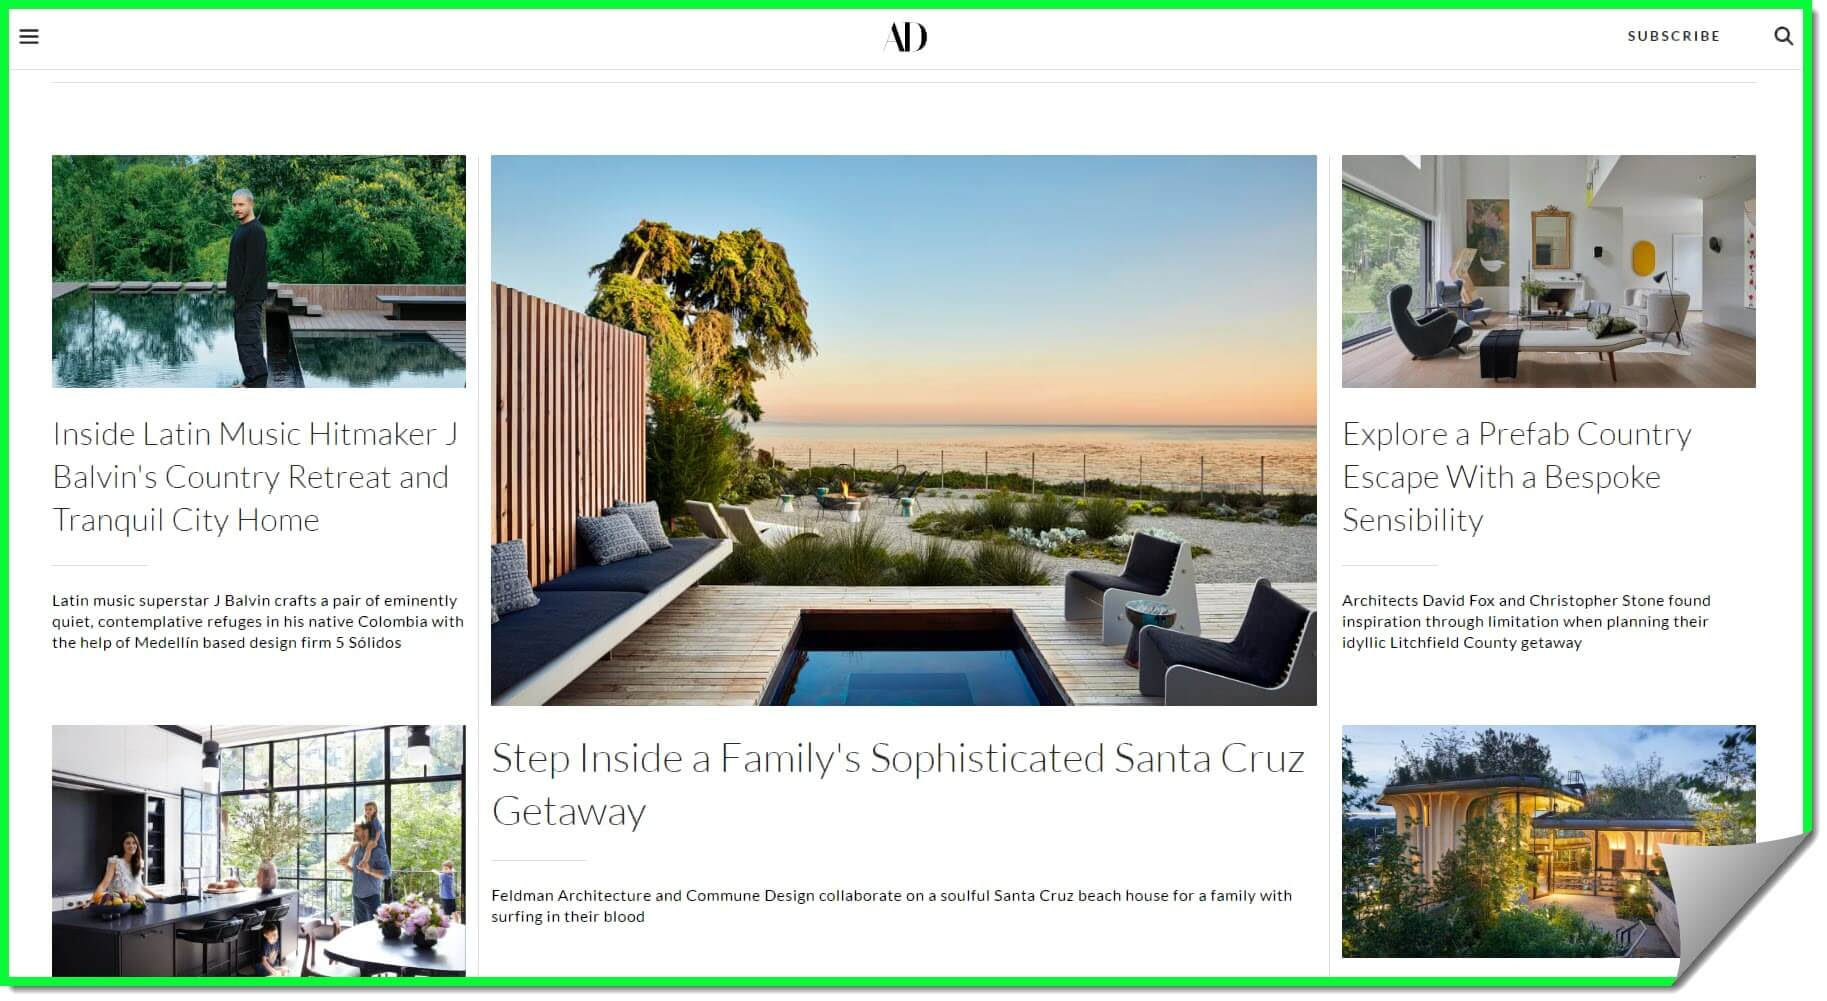 9 Of The Best Architecture Websites in 2021 - Reviewed